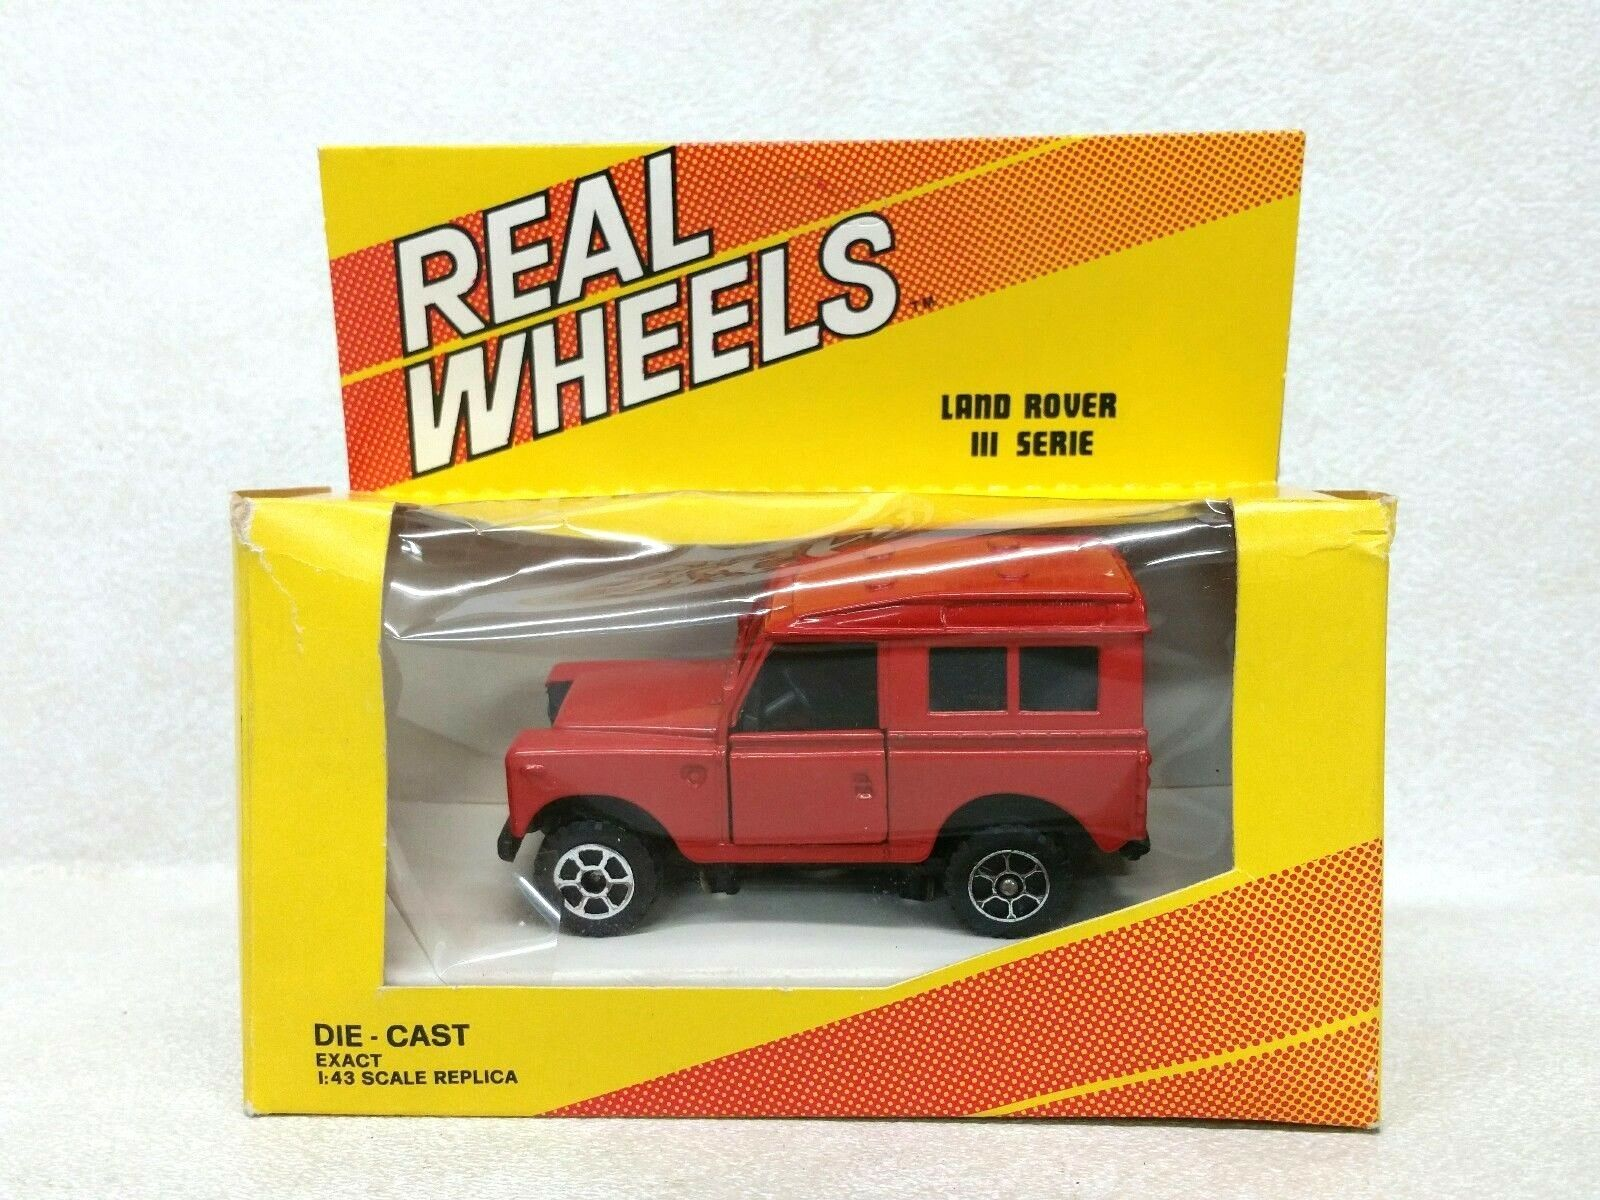 Polistil Real Wheels Land Rover III Serie Die-Cast Toy Car 1 43 Scale NIB